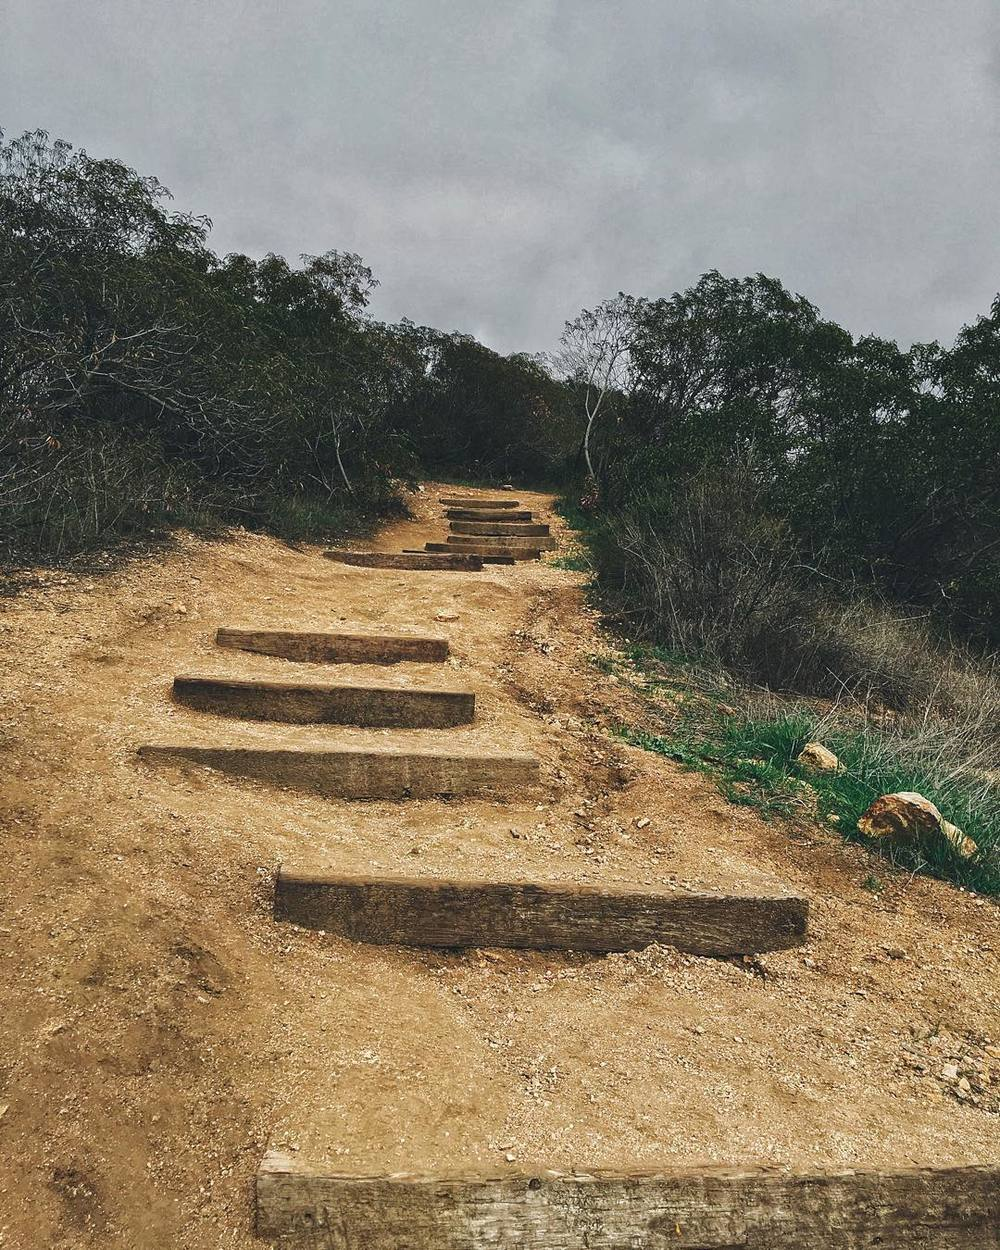 maybe-ill-conquer-this-little-gem-today-sycamorecanyon-stairs-and-semi--wilderness-moody-cloudy-day-last-time-gooutside-hiking-trailrunning-more-like-trail-huffingandpuffing-23366_23959044673_o.jpg